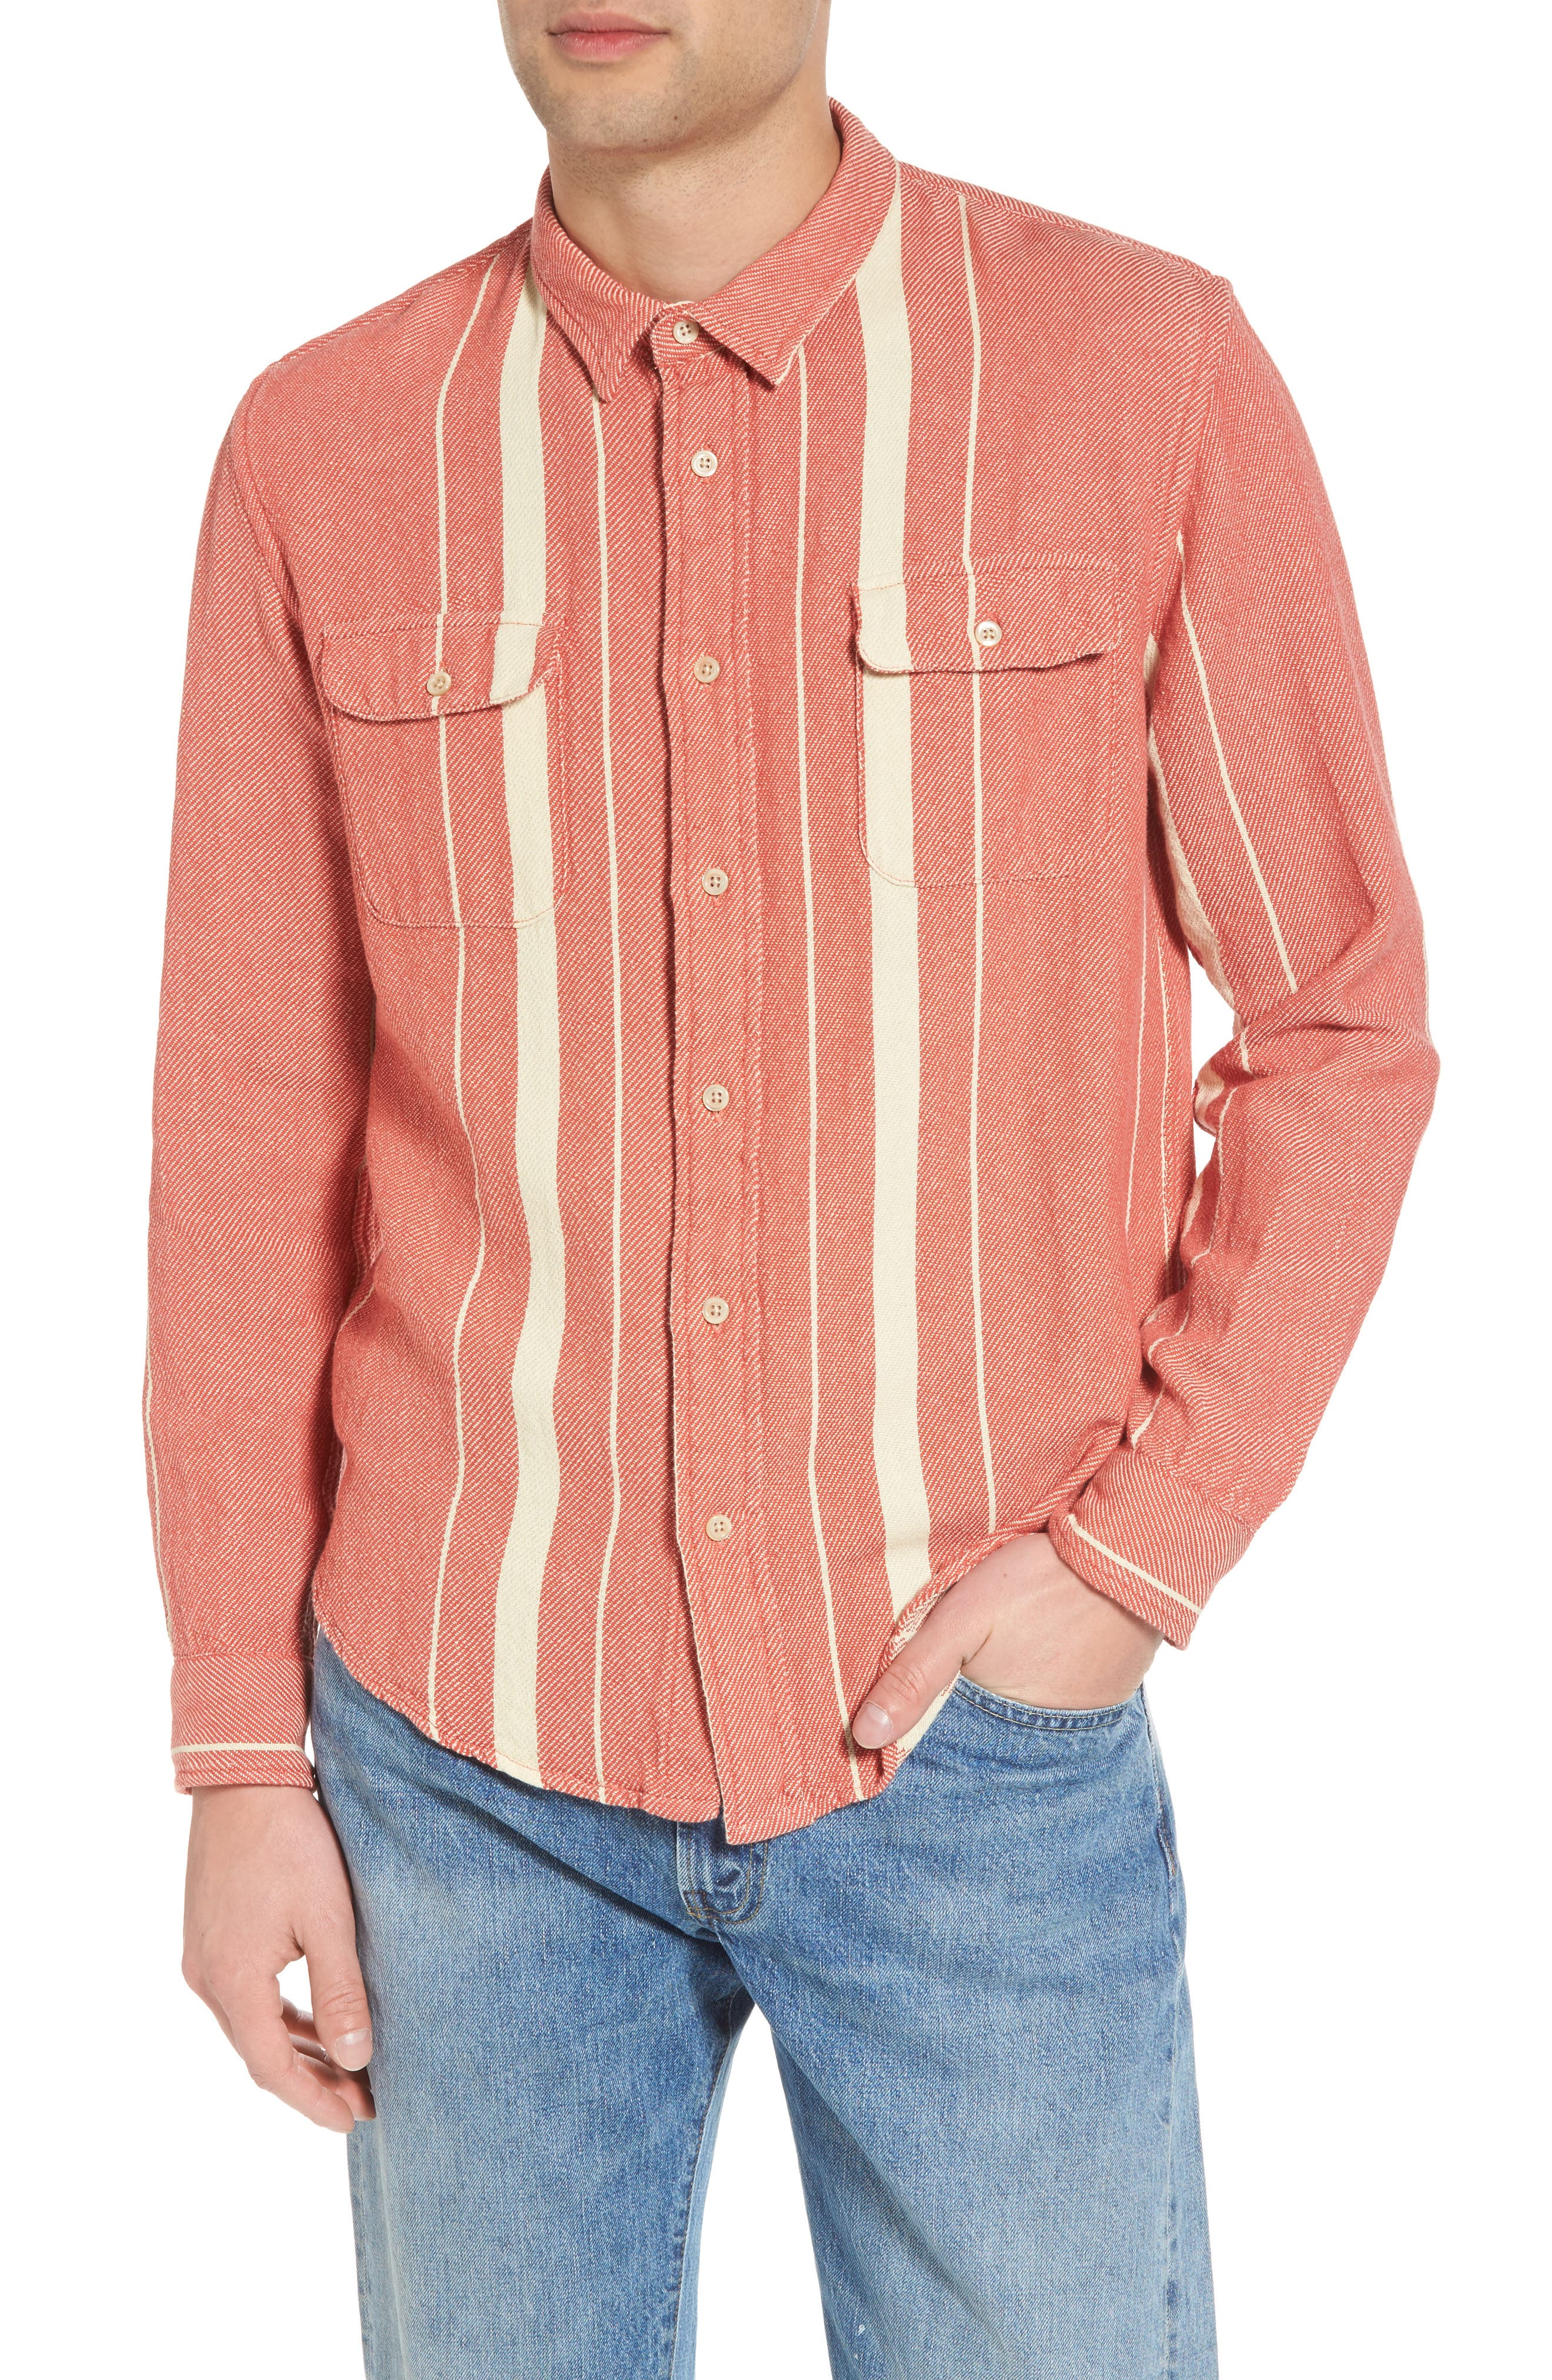 Shorthorn Plaid Woven Shirt,                         Main,                         color, 600